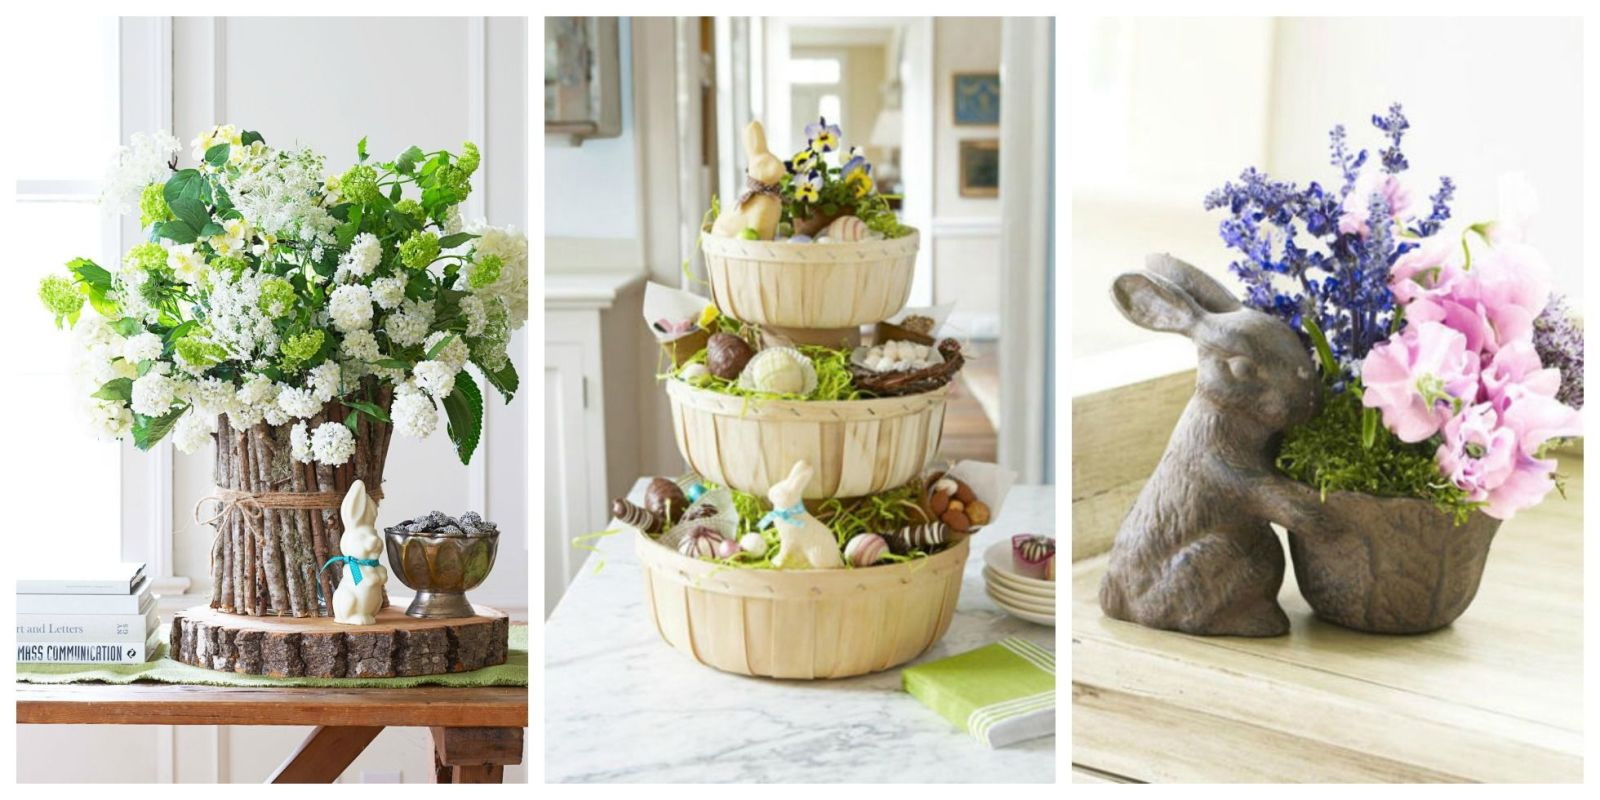 70+ DIY Easter Decorations - Ideas for Homemade Easter Table and ...